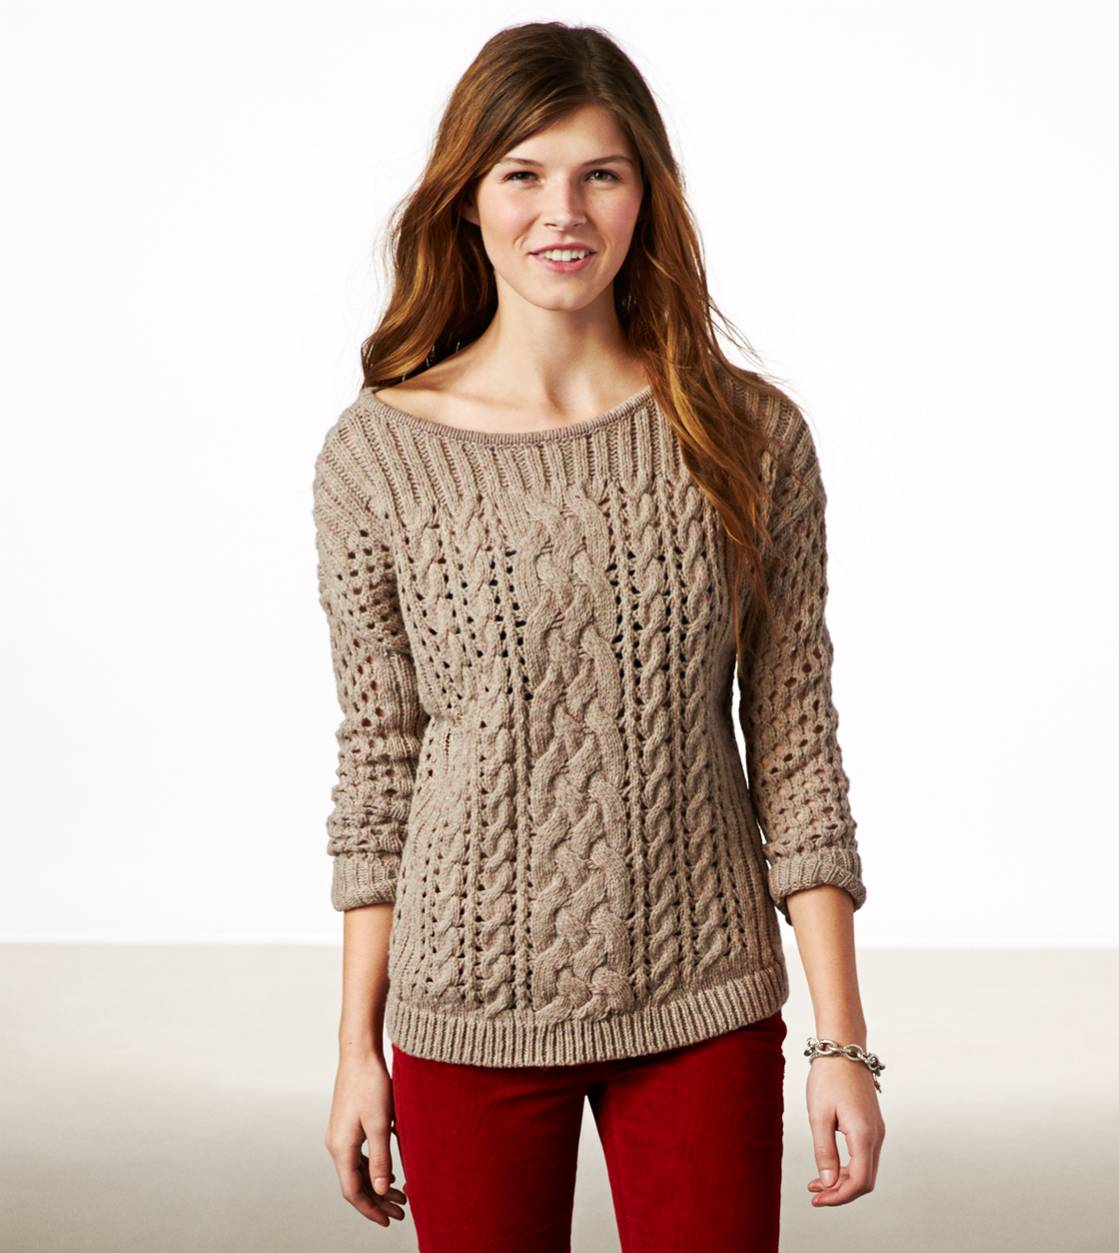 Brown Heather AE Mixed Knit Donegal Sweater